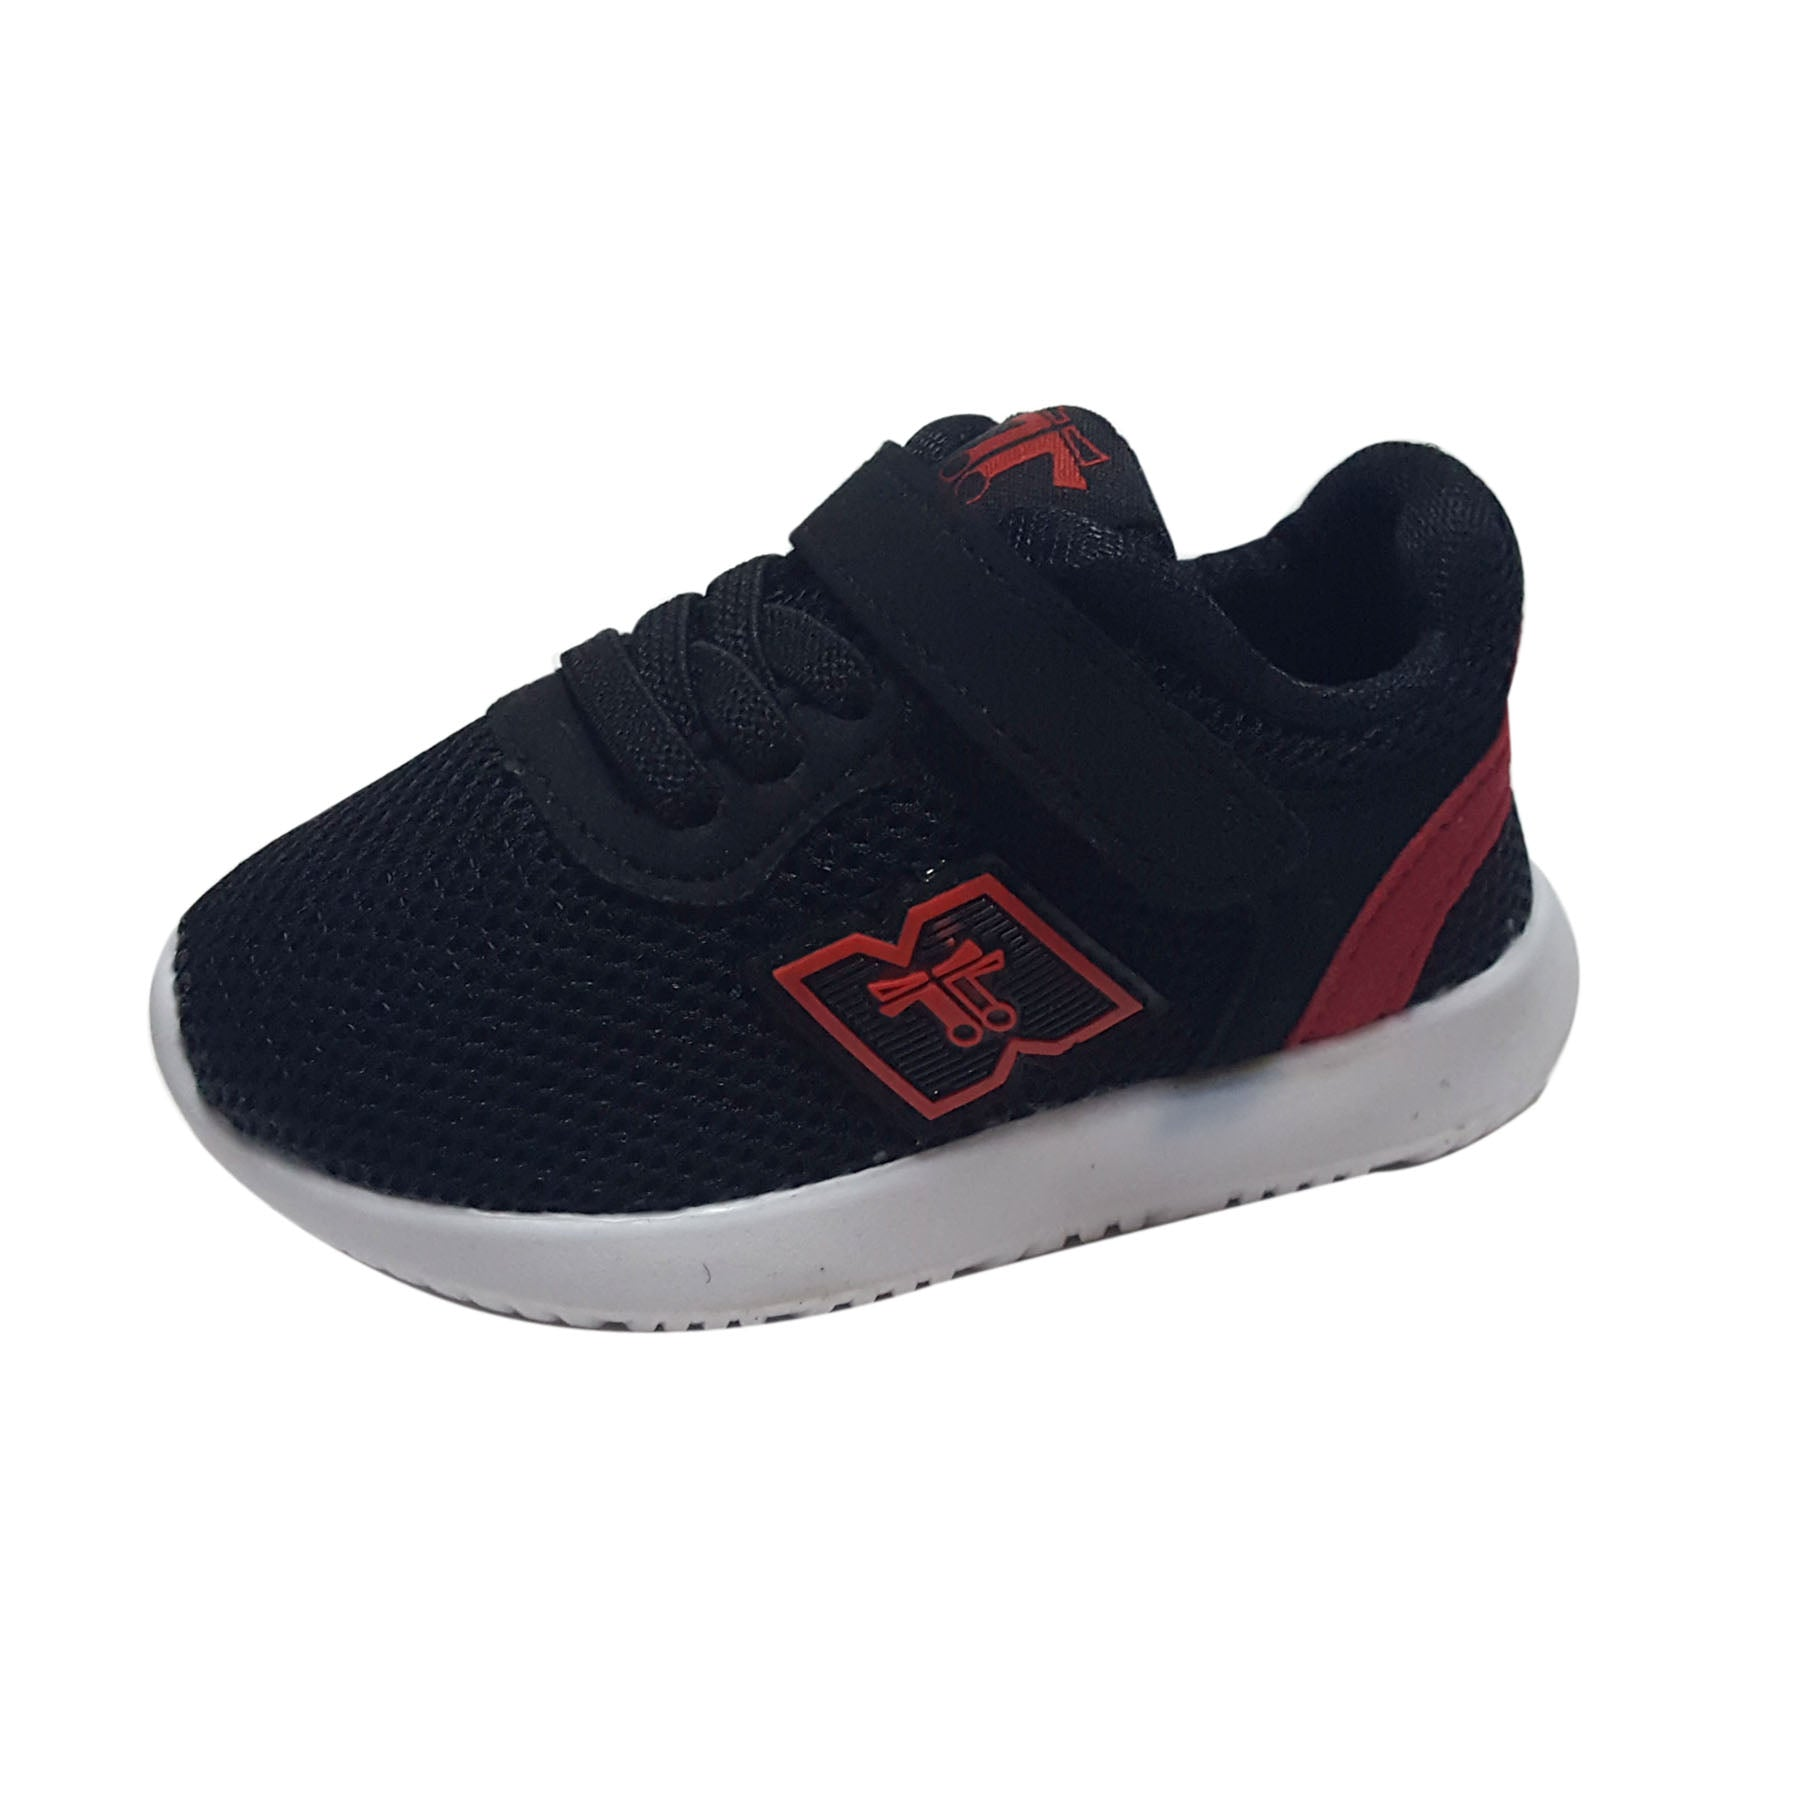 S177 Raf Raf Sports Shoes - Travis Black/Red New!